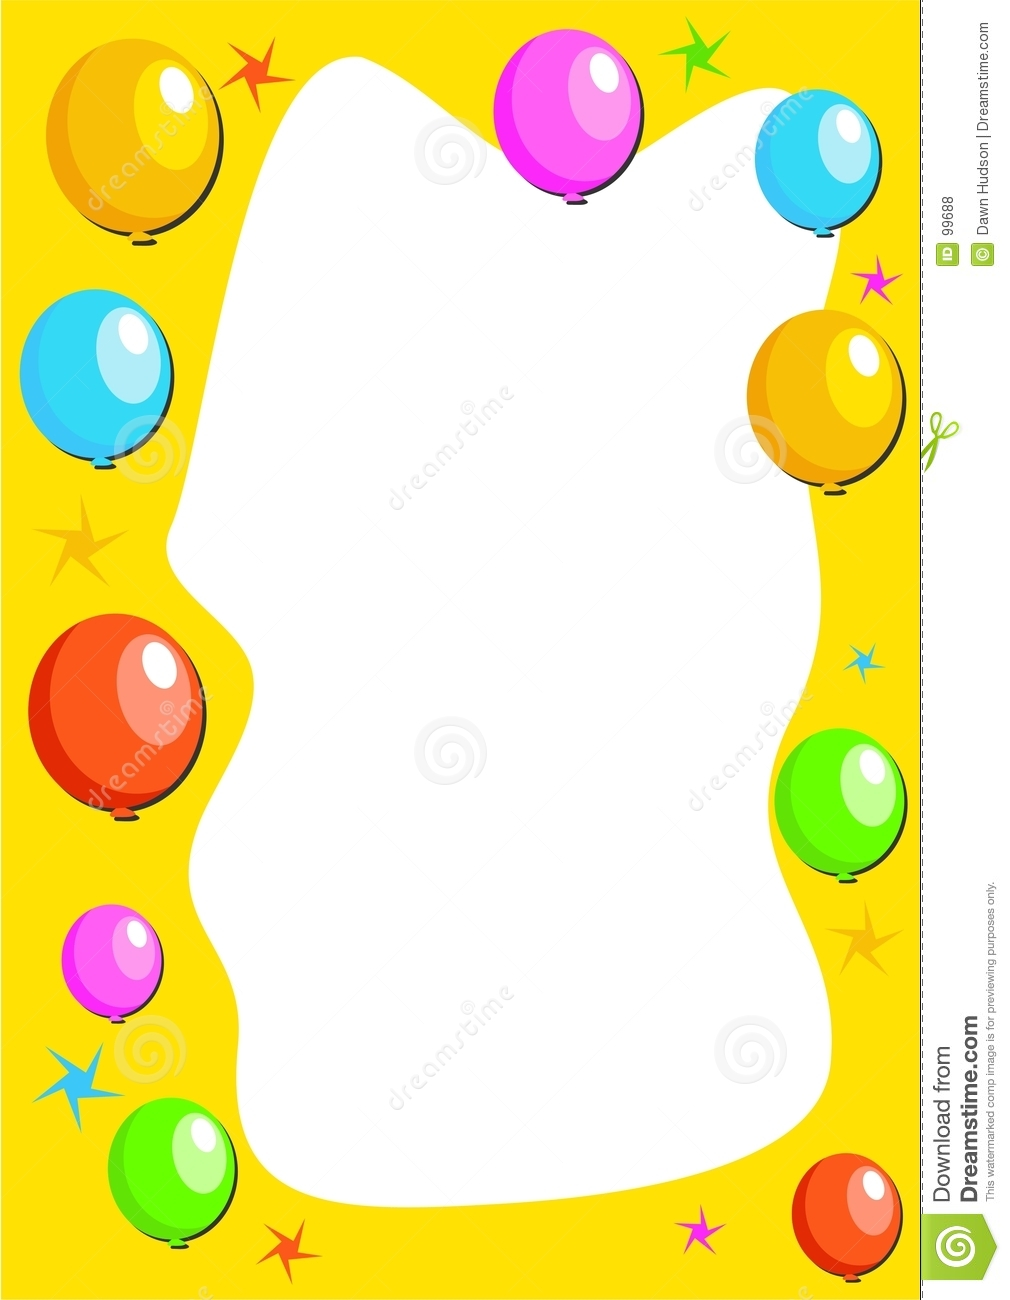 free birthday border designs ; birthday-party-clip-art-borders-clipart-panda-free-clipart-images-2vbFbb-clipart